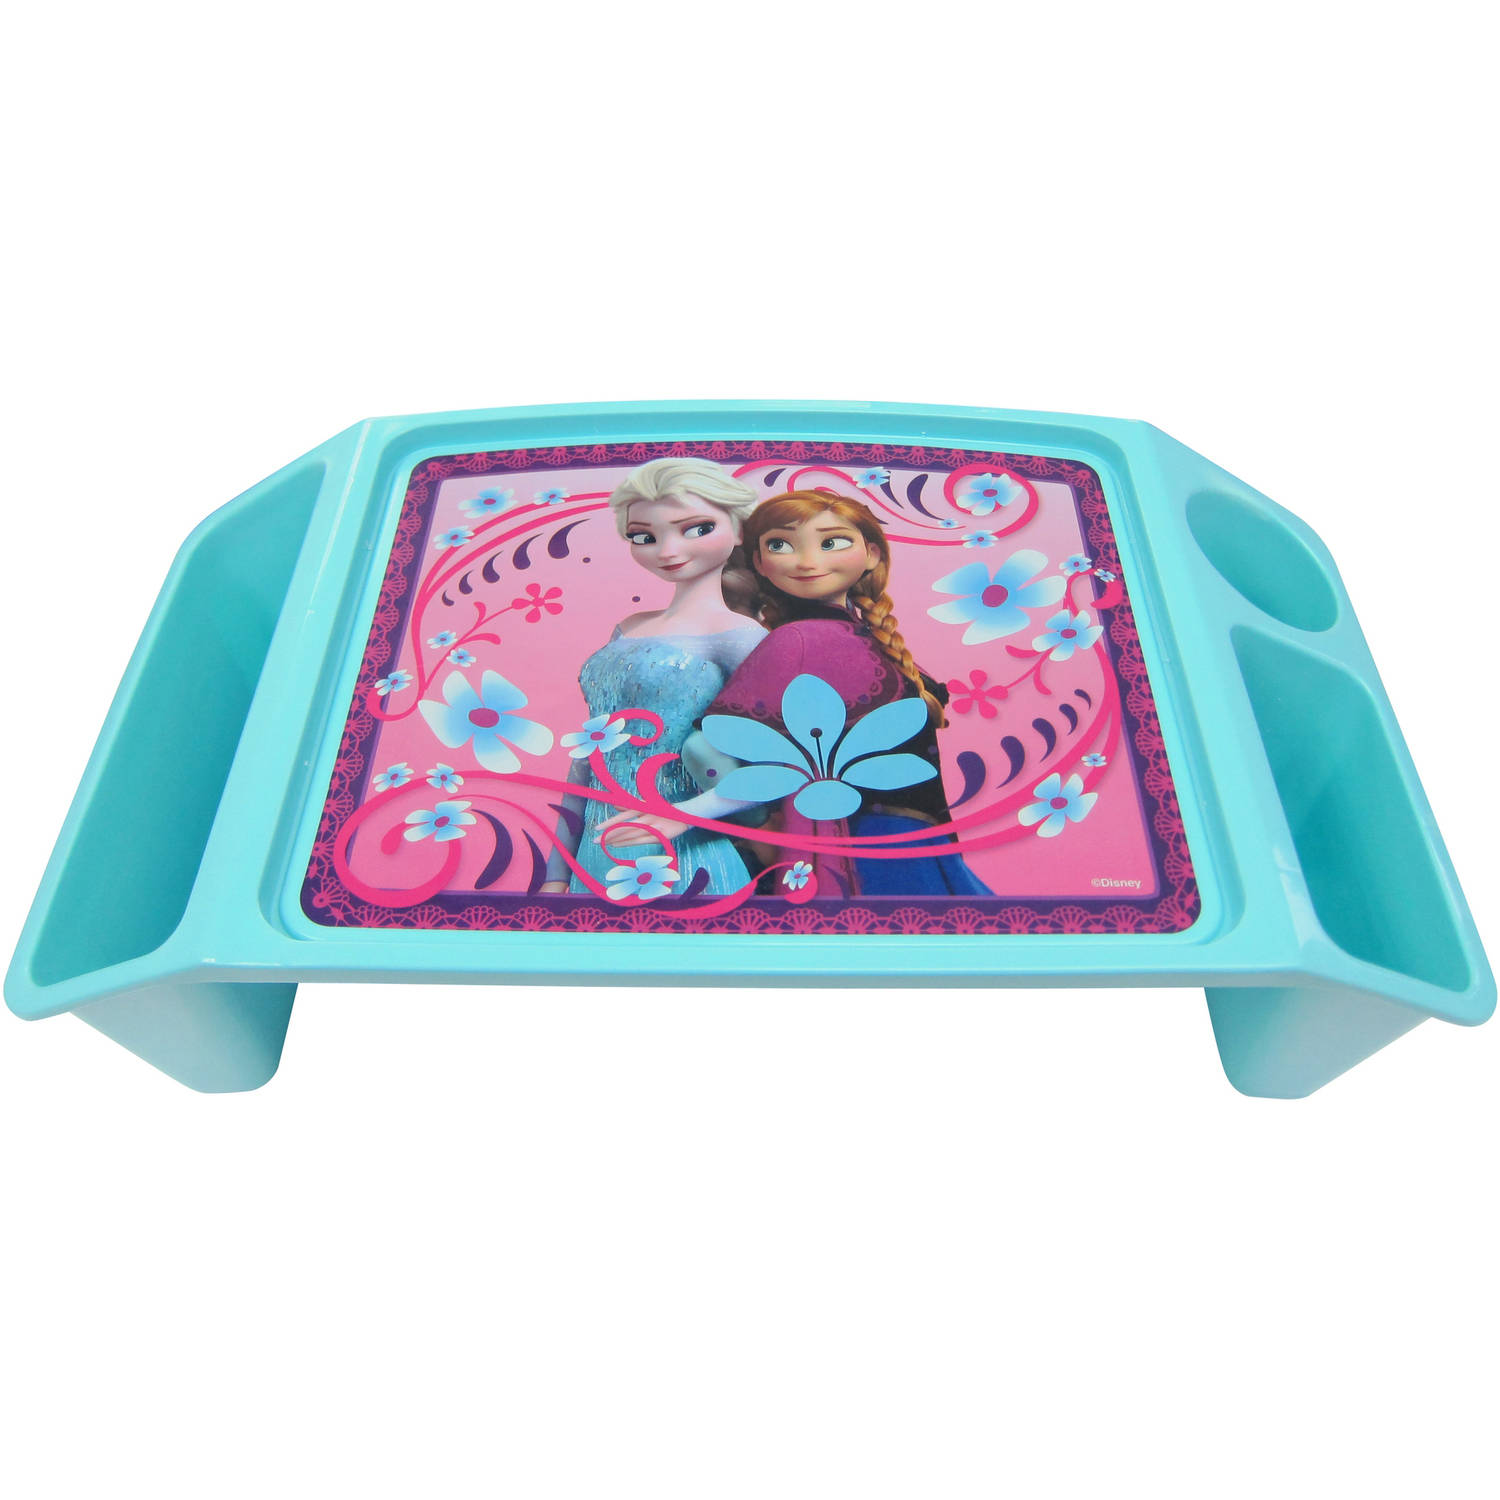 Art Desk For Kids Lap With Storage Craft Disney Frozen Activity Tray Com